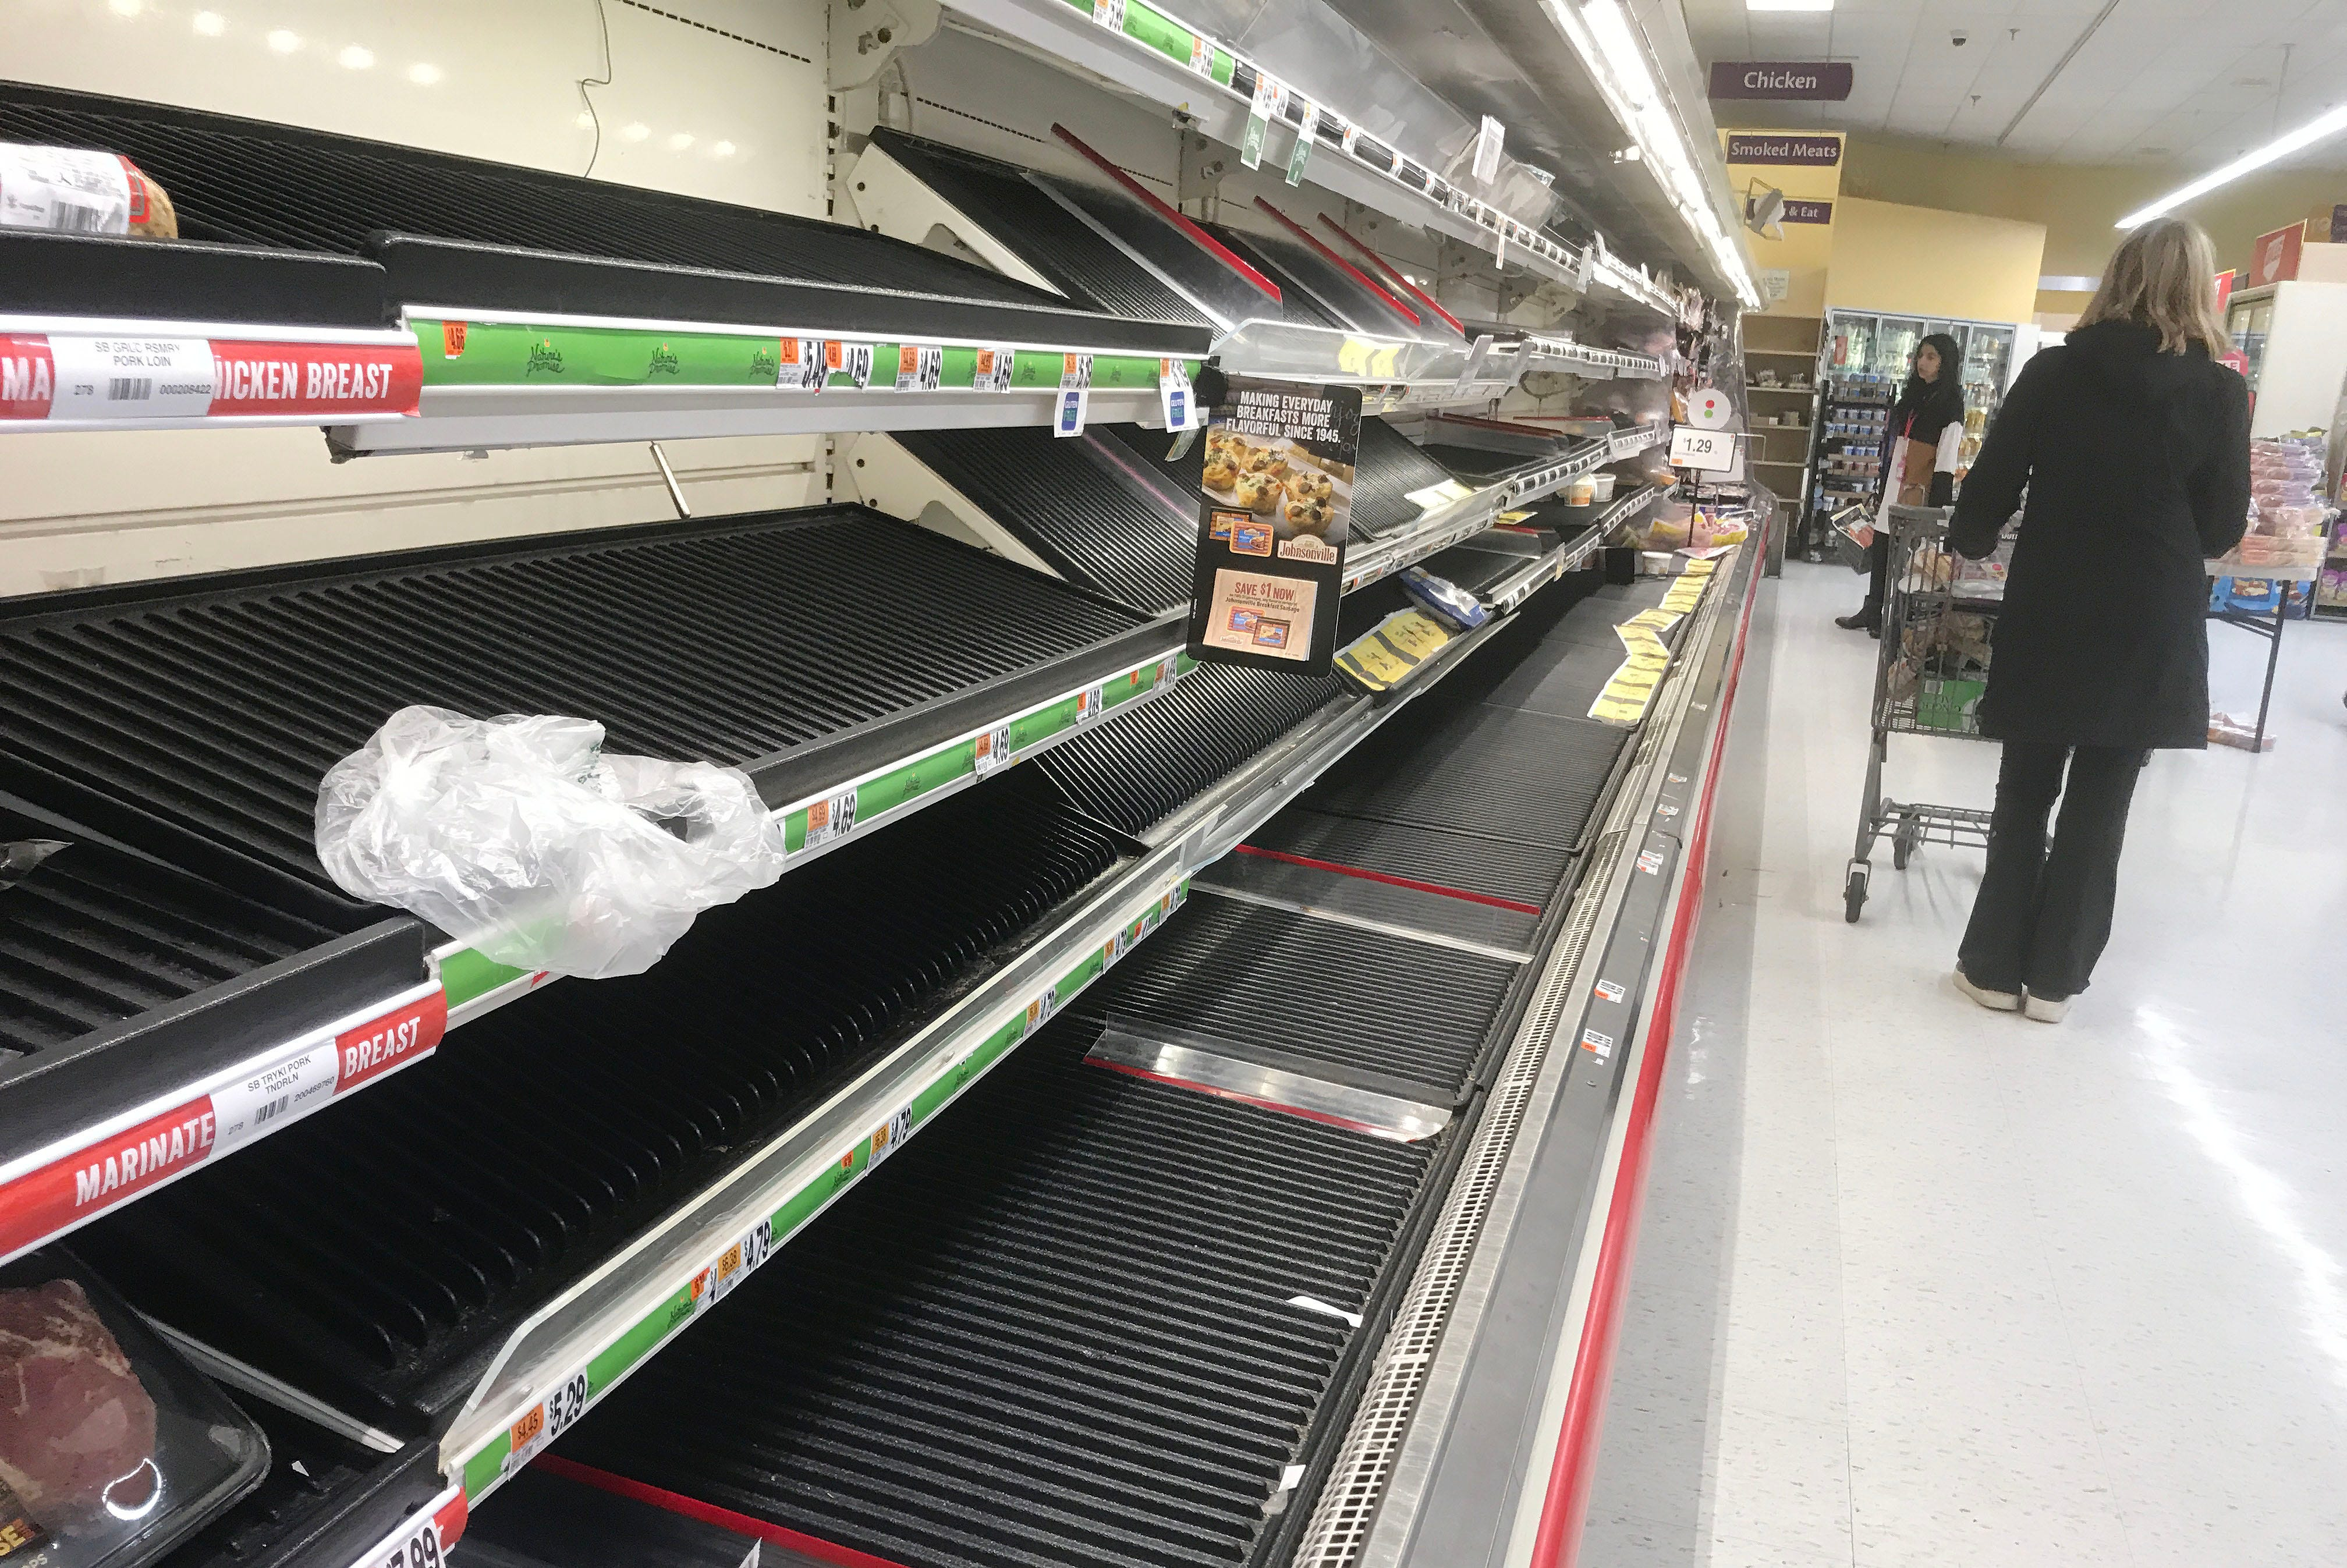 As COVID-19 swept the state and schools and businesses closed their doors, grocery stores scrambled to restock, limiting their hours and putting stockpiling limits on dozens of grocery items to alleviate scenes like this one, where shoppers saw empty meat shelves at the Stop & Shop in Mamaroneck on March 13, 2020.